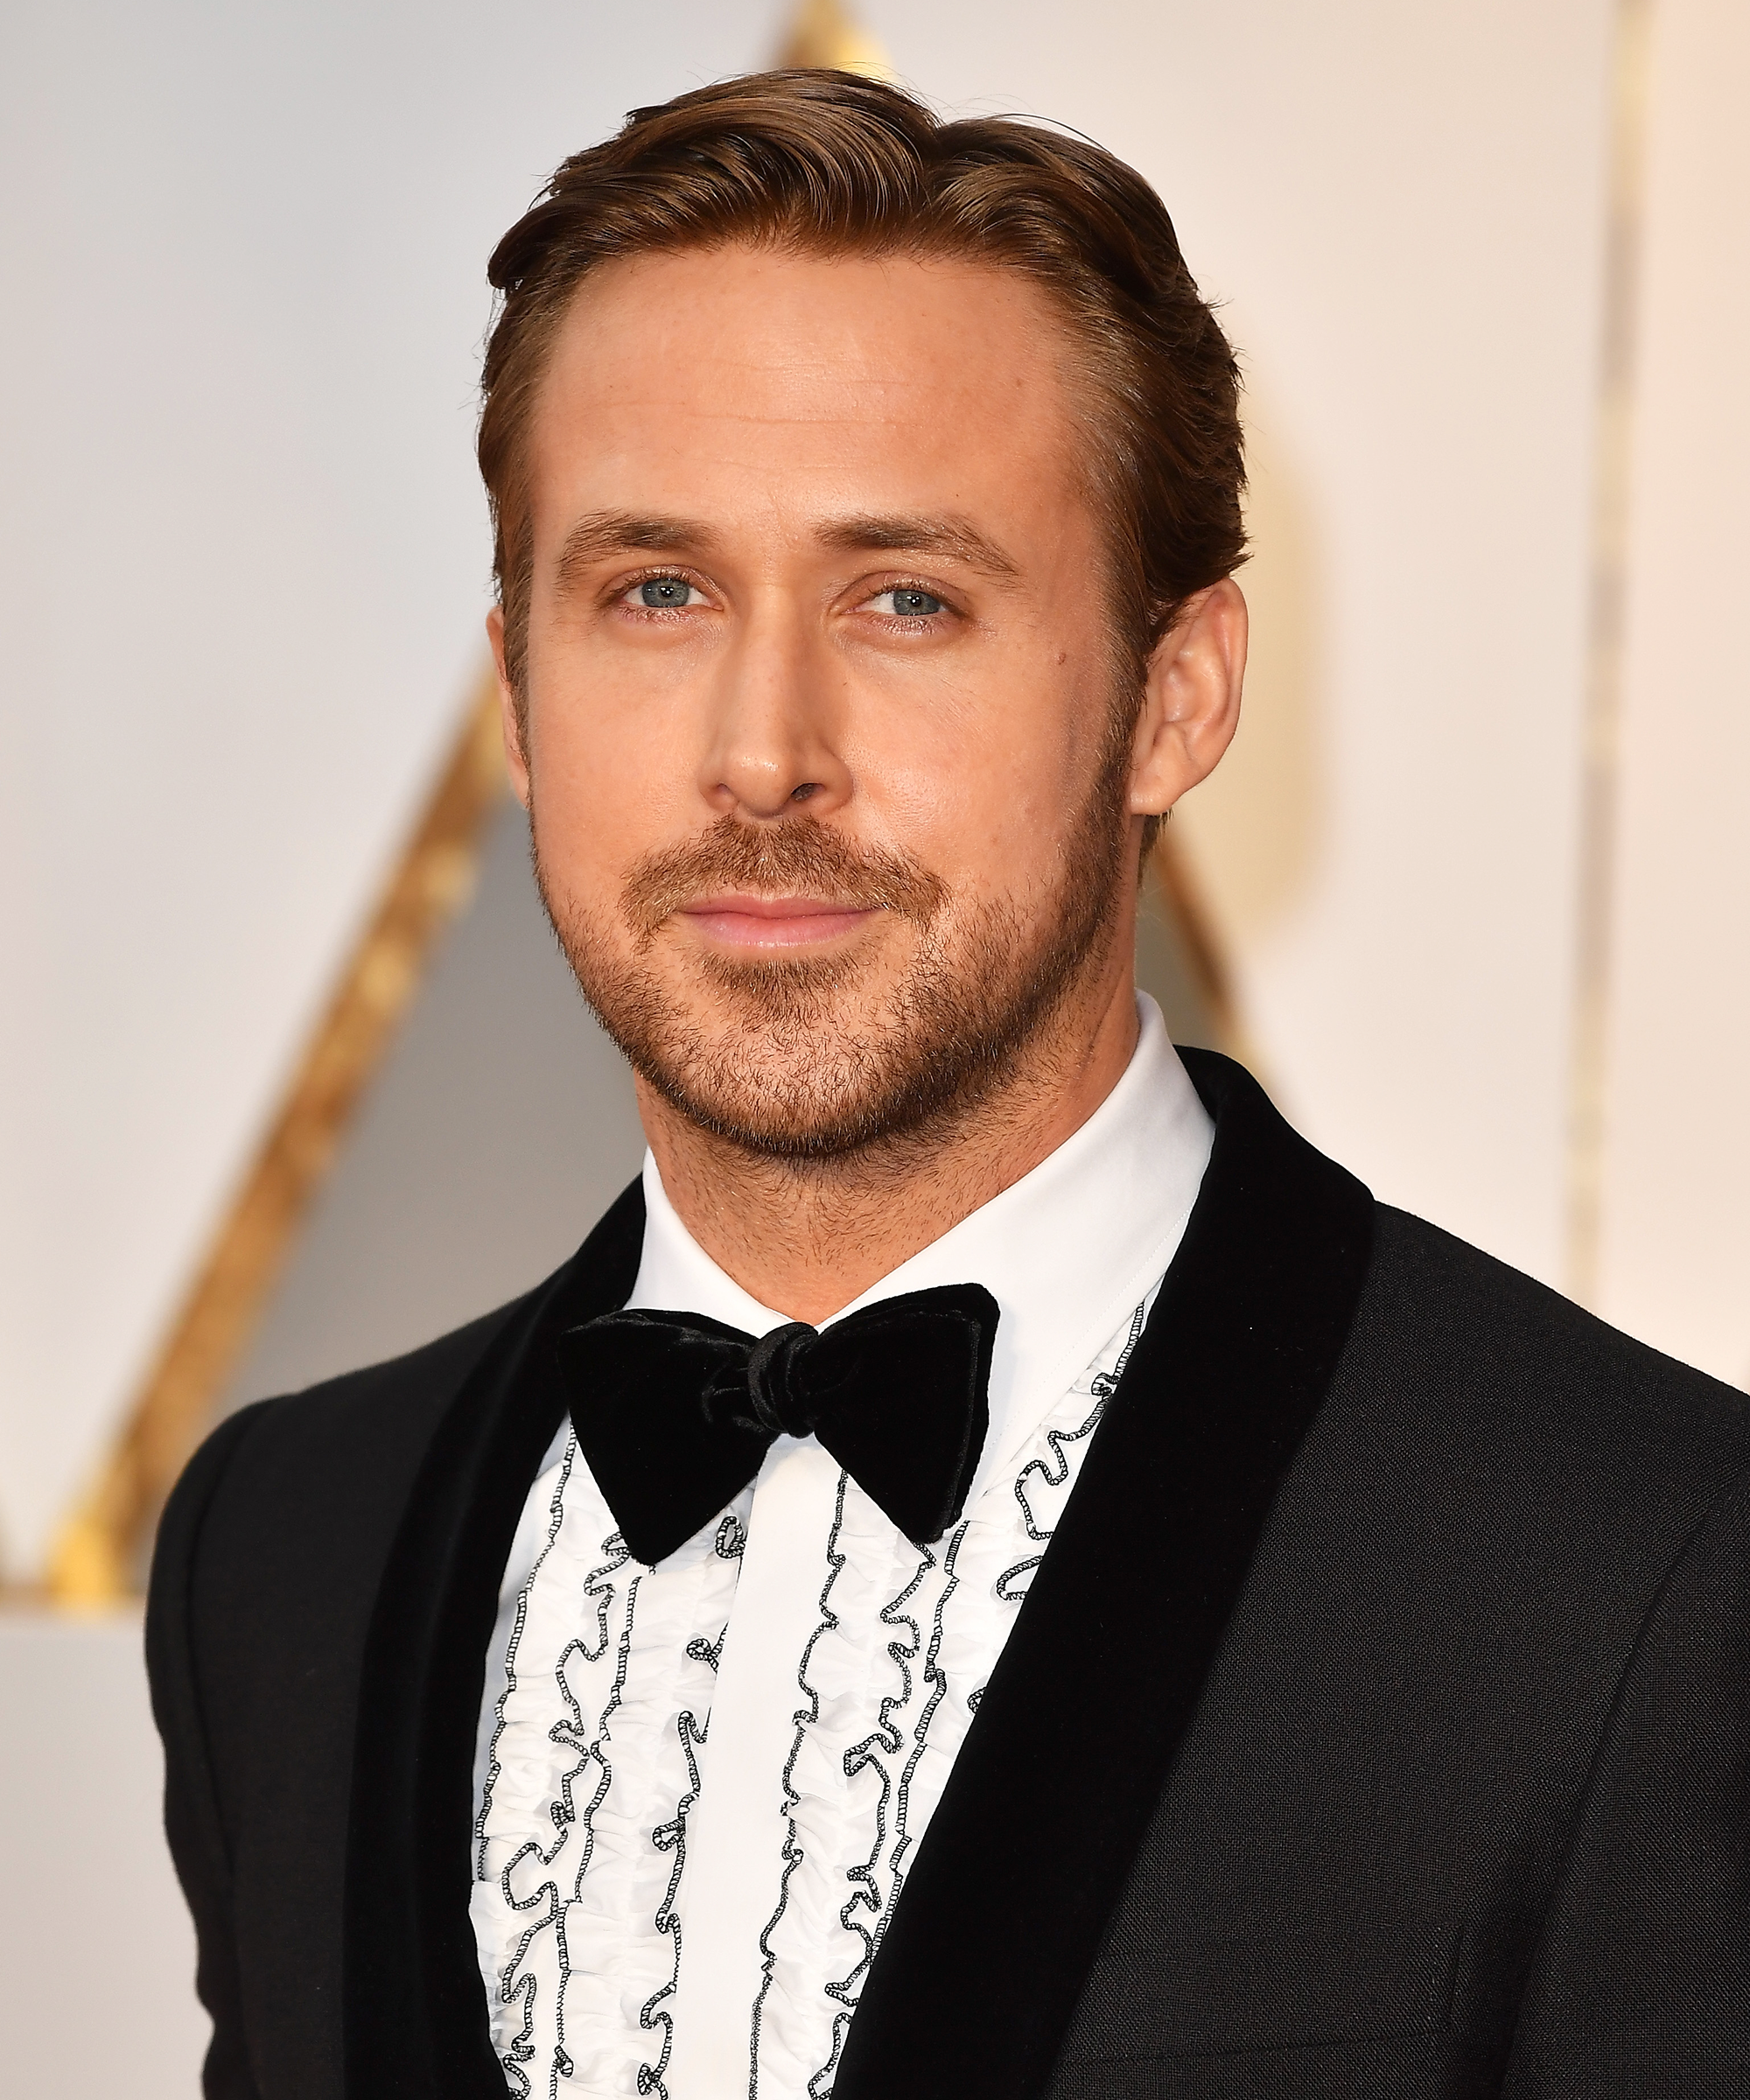 Ryan Gosling Frown Best Actor Nomination Clip Oscars